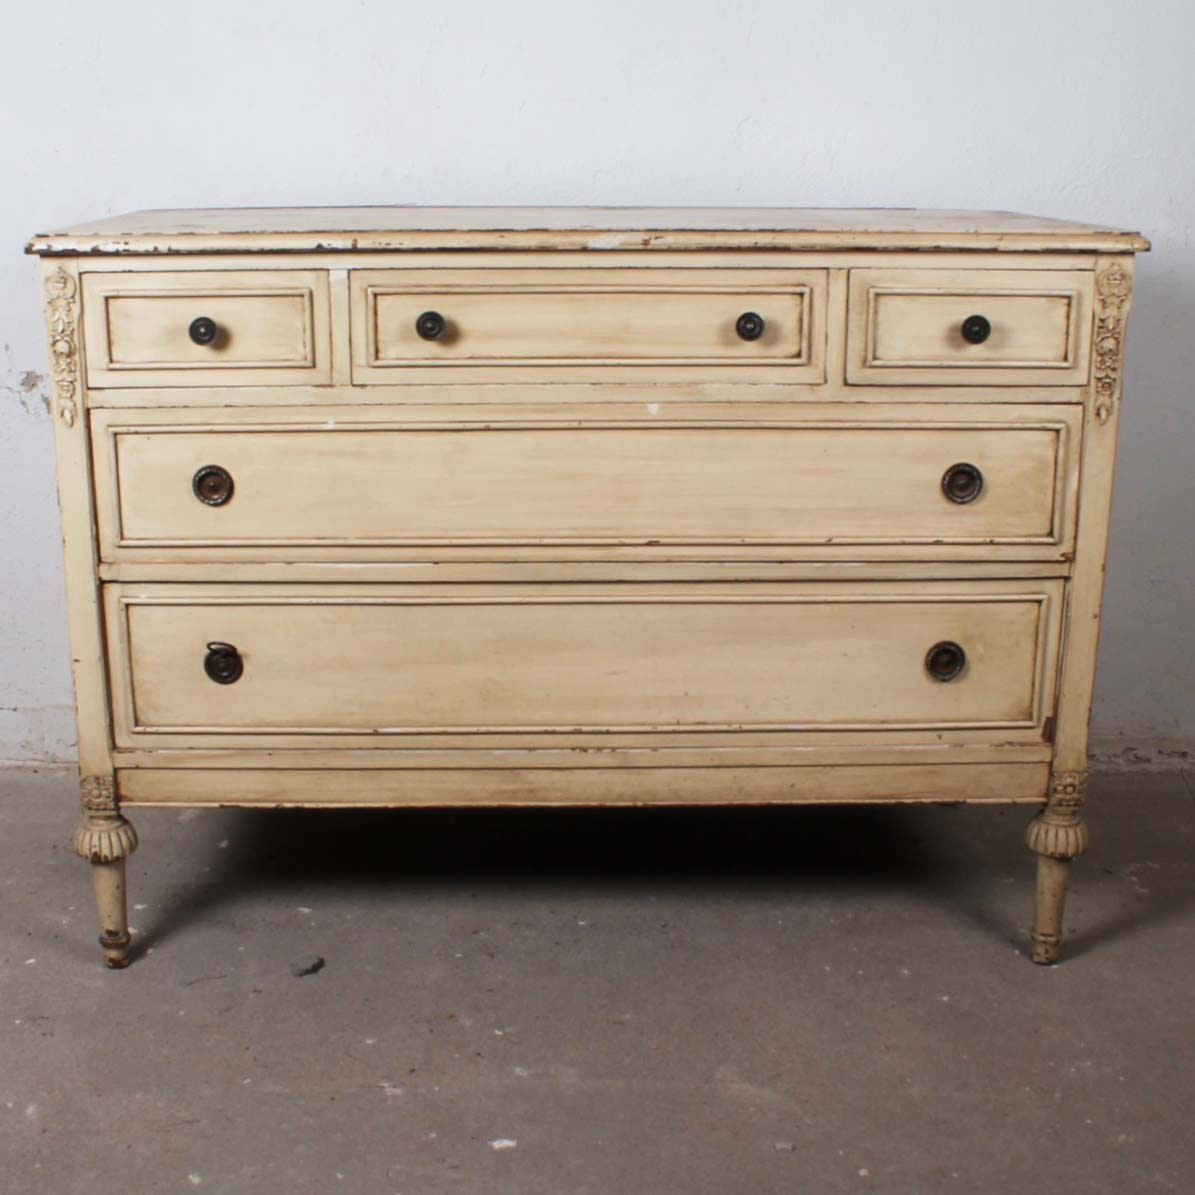 Antique White Painted Sheraton Style Chest of Drawers